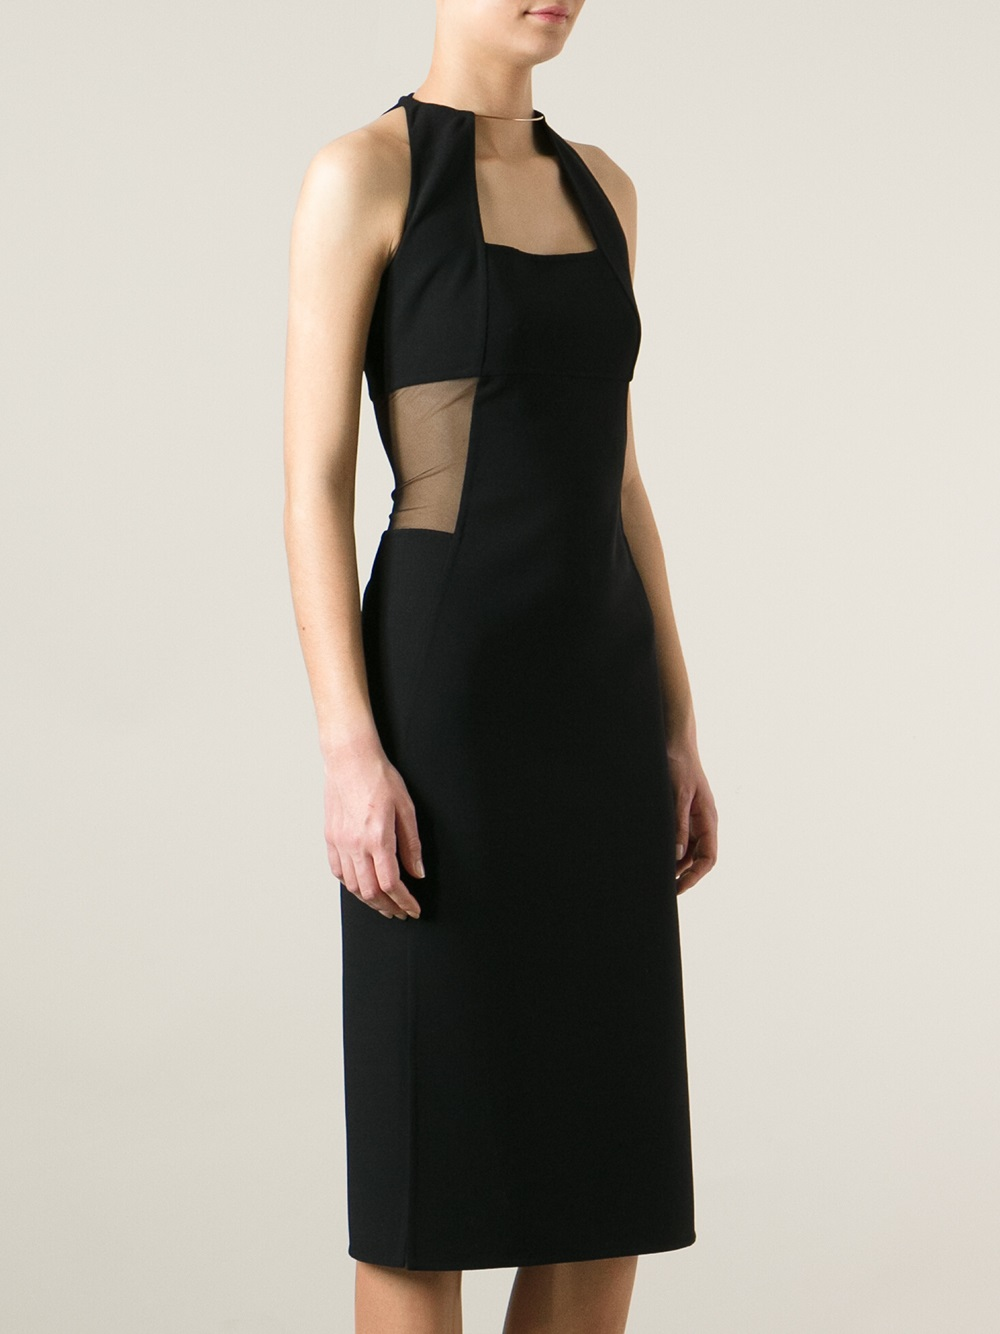 Akris Neck Loop Dress - Apropos The Concept Store - Farfetch.com